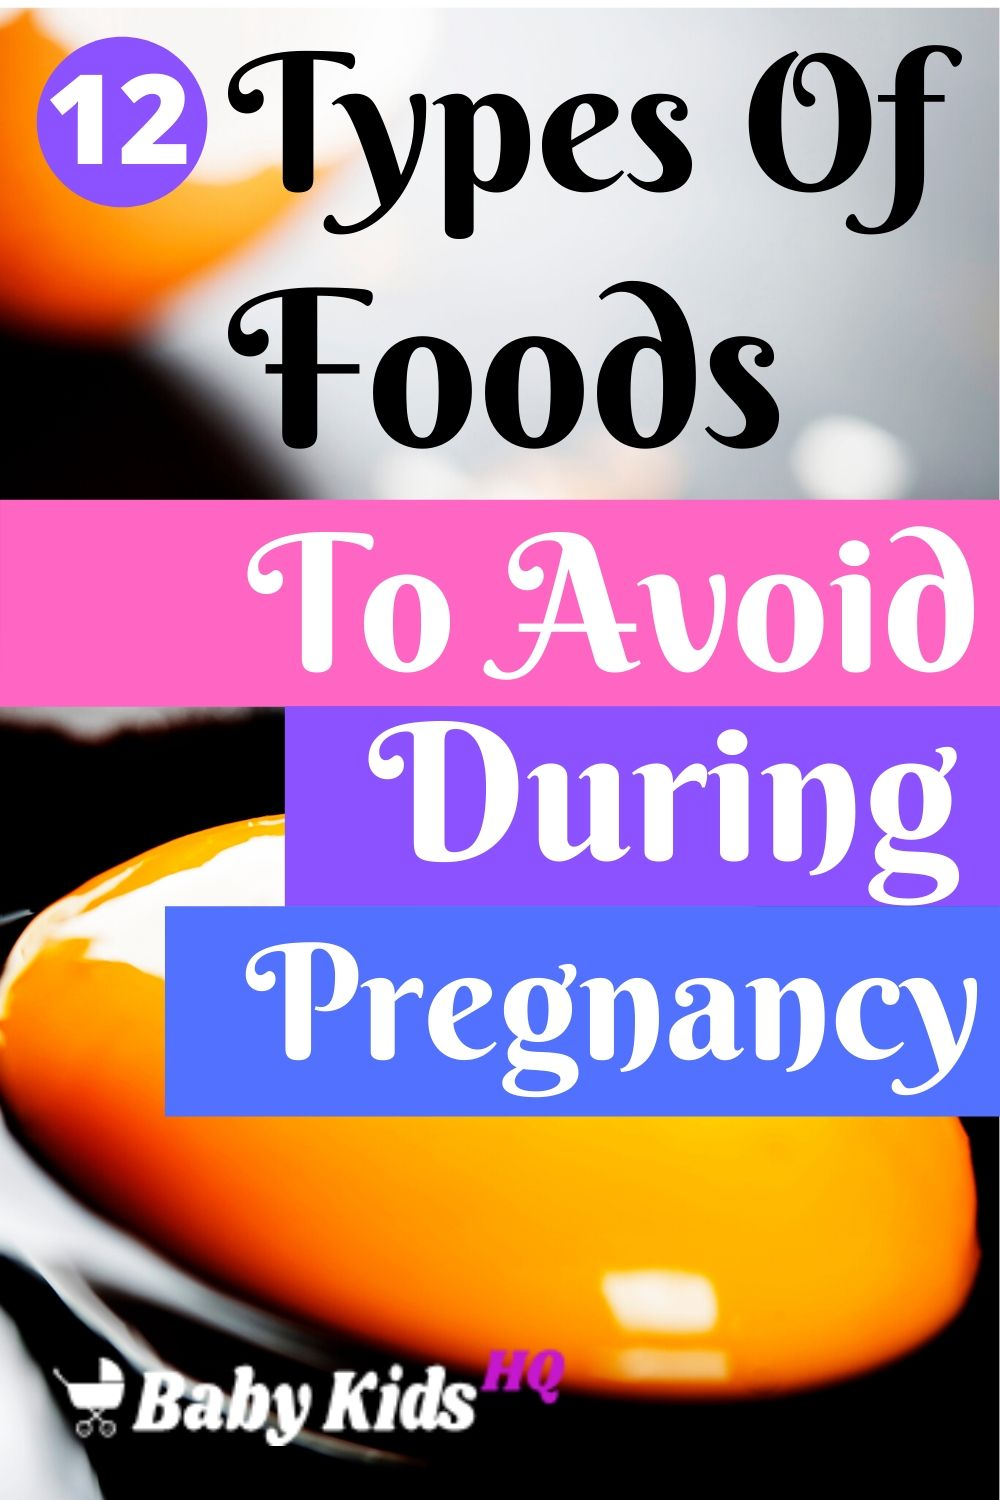 12 Types Of Foods Or Meals To Avoid During Pregnancy